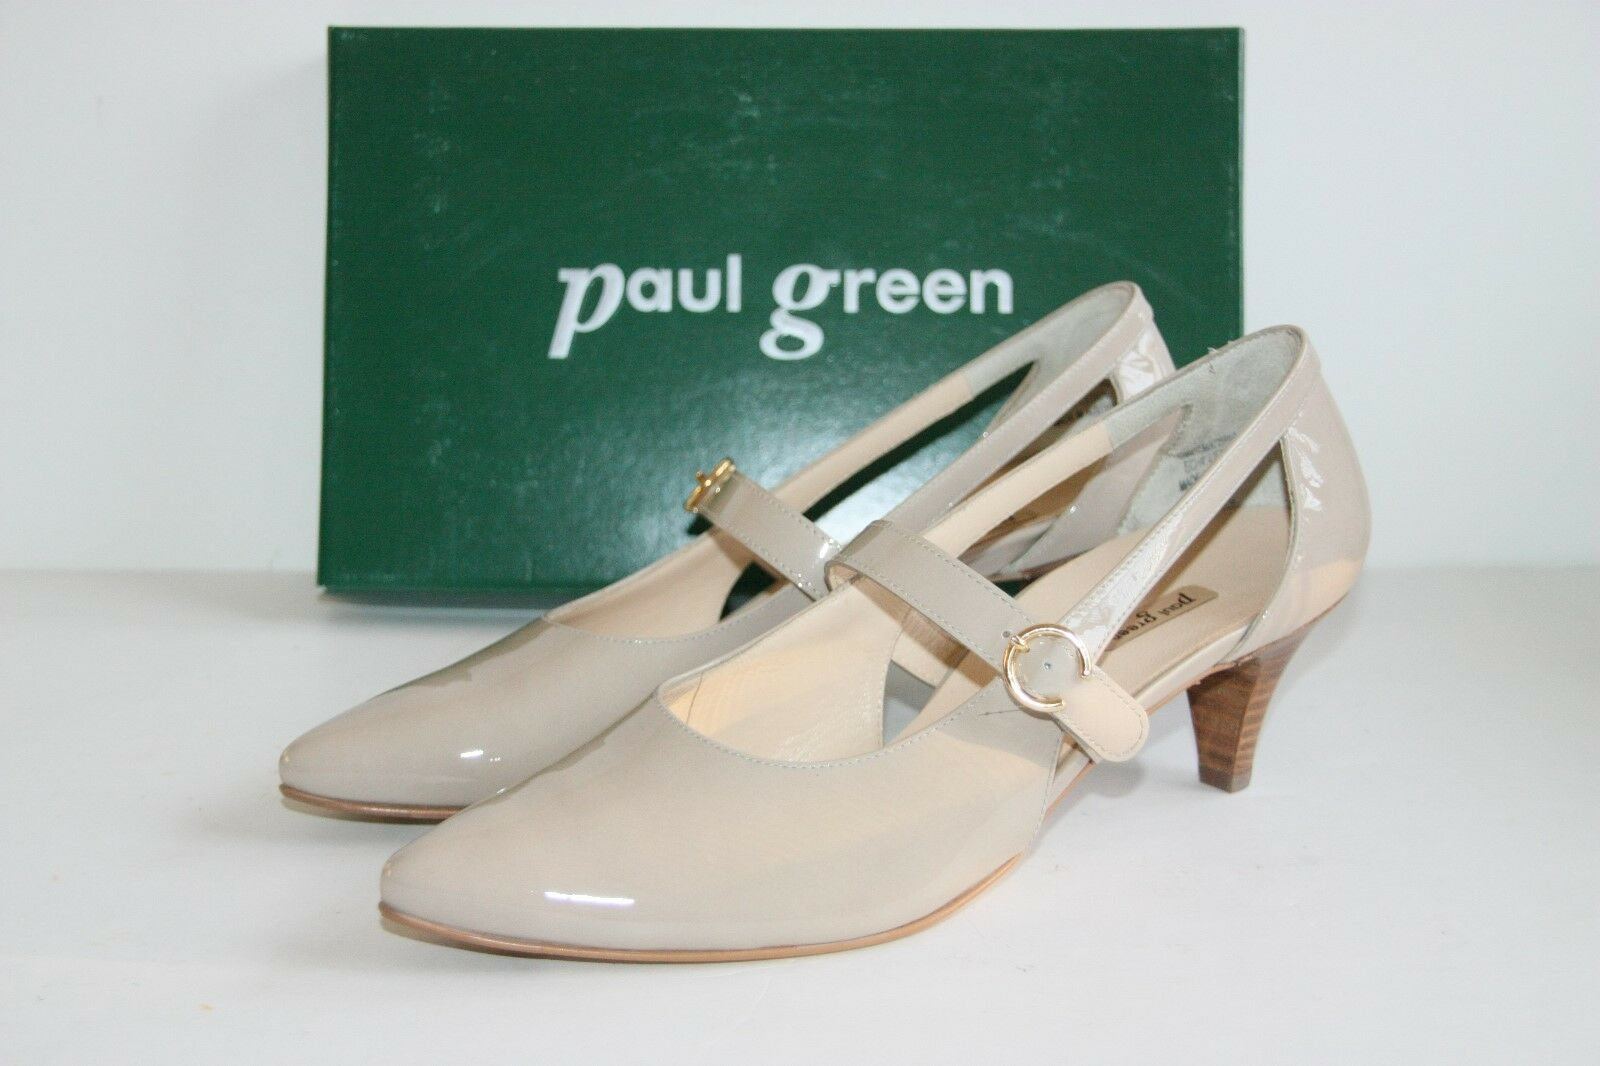 299 BRAND NEW Paul Green Nude MARA Pumps Size   9US 6.5UK